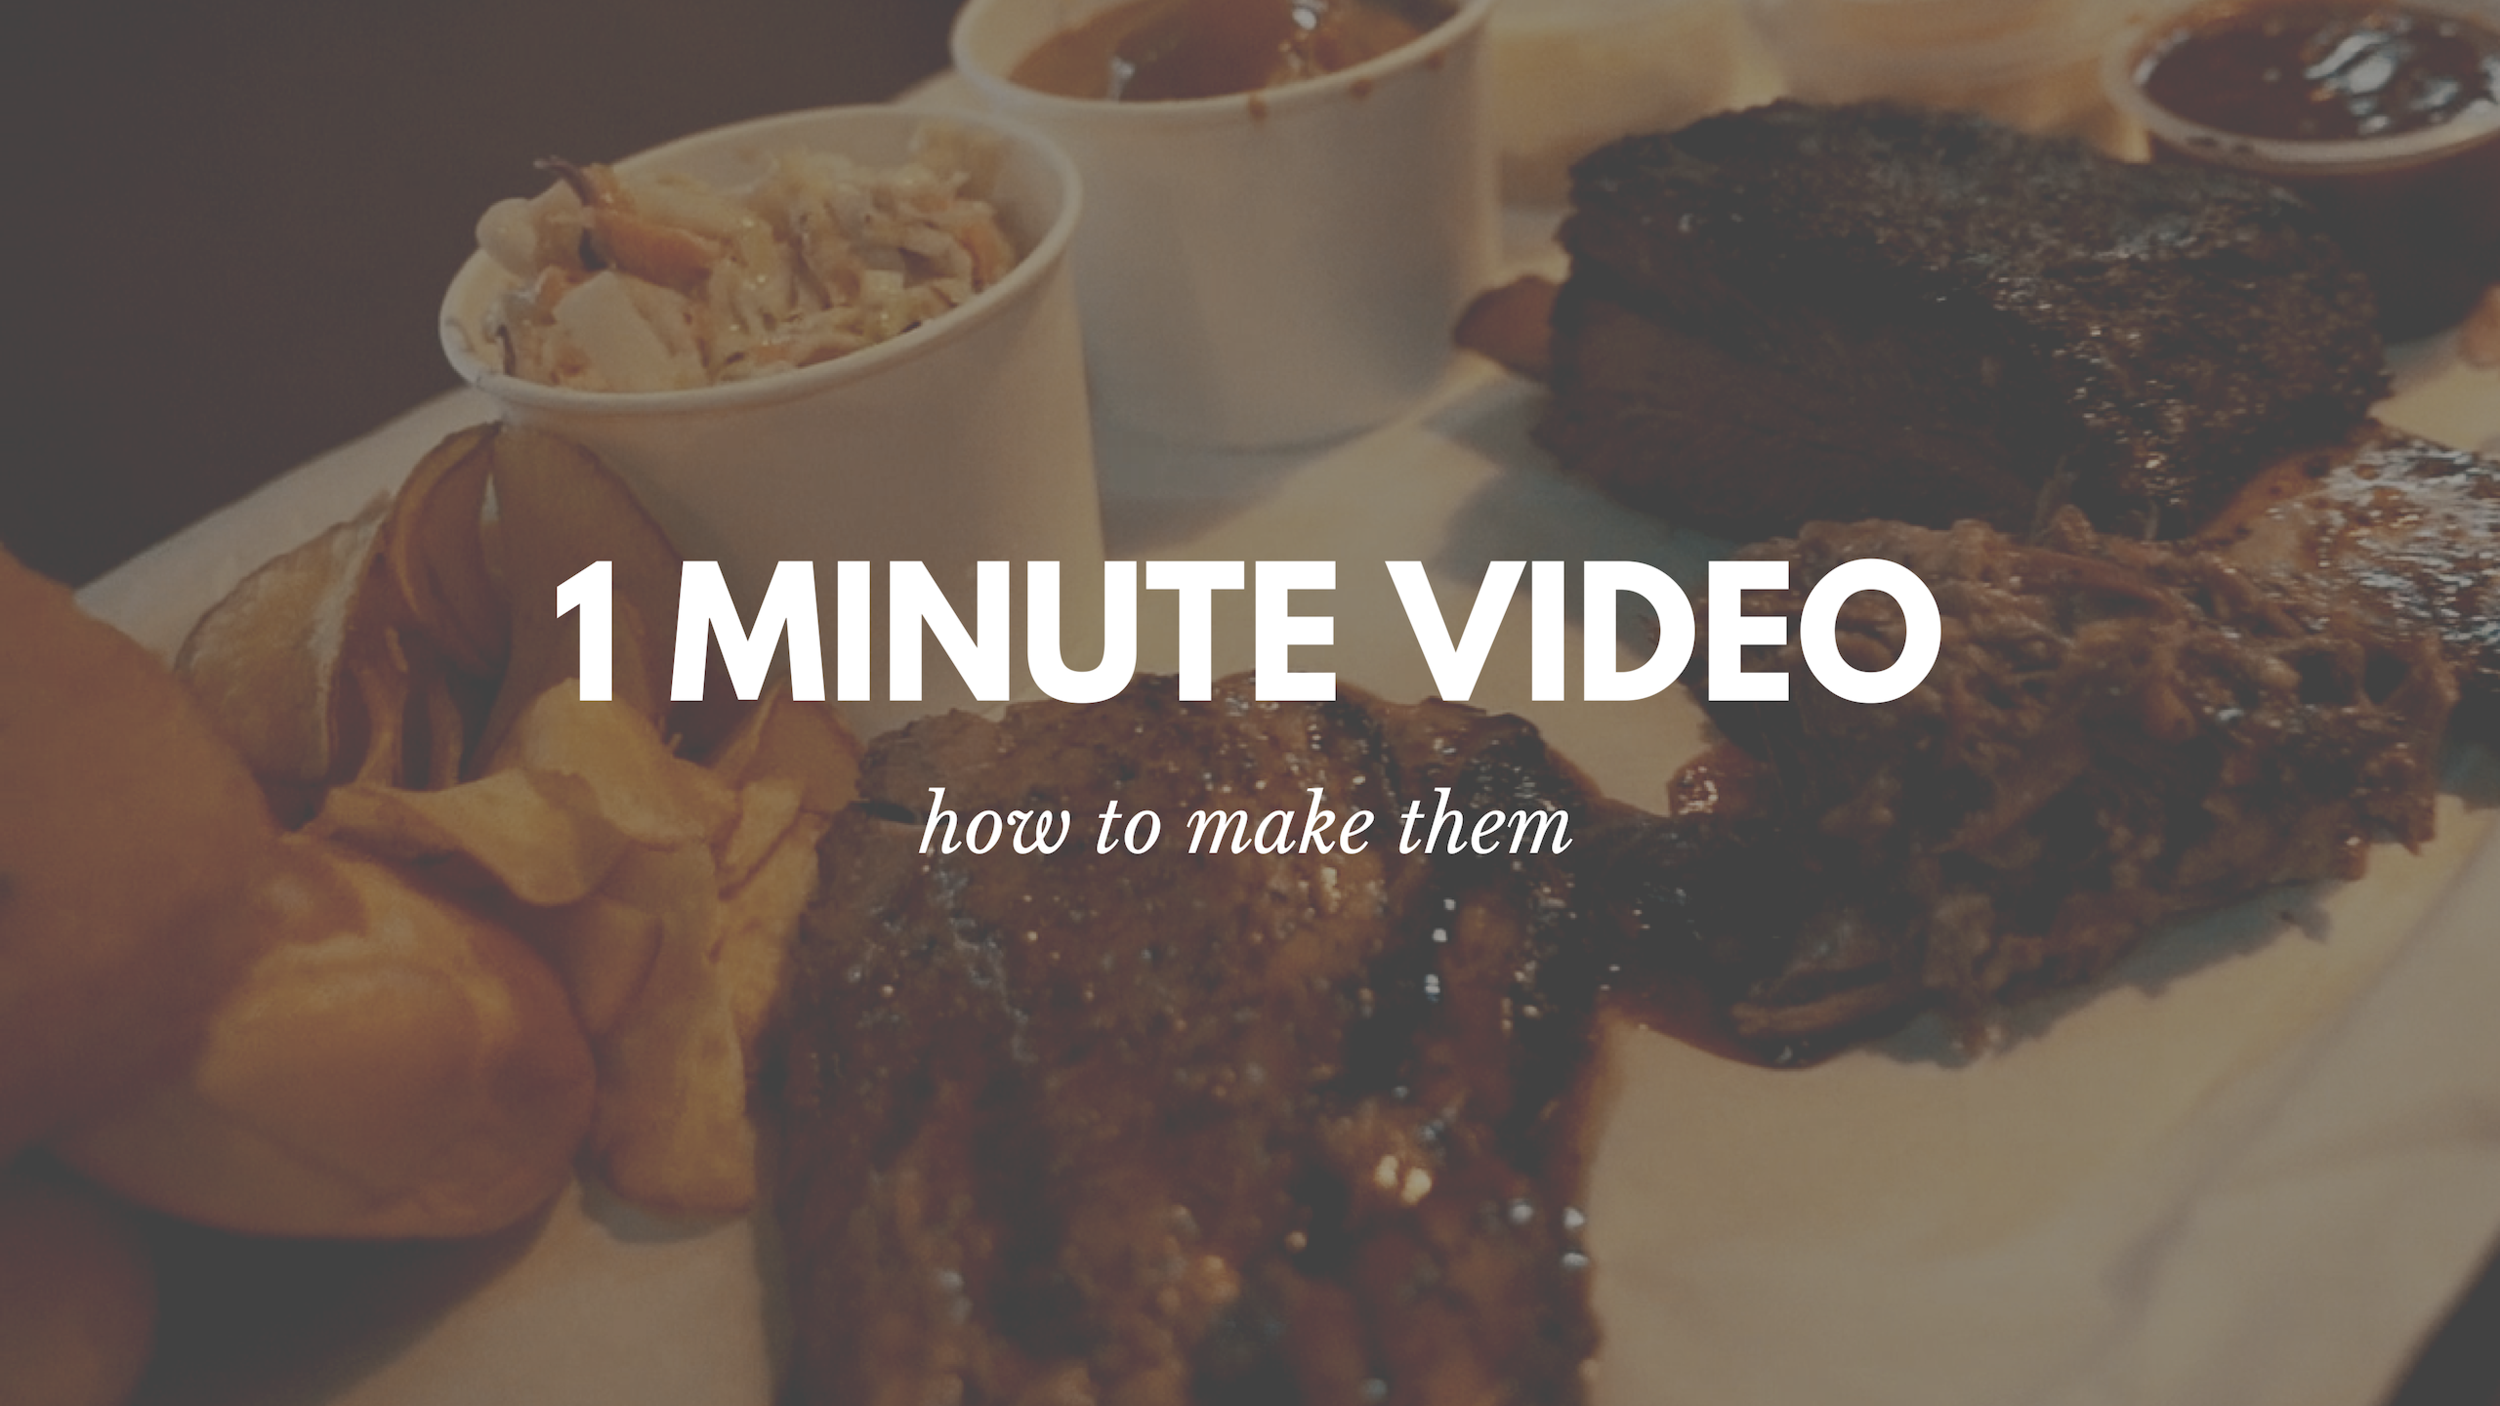 Why 1 Min Video Works For Facebook Ad Singapore